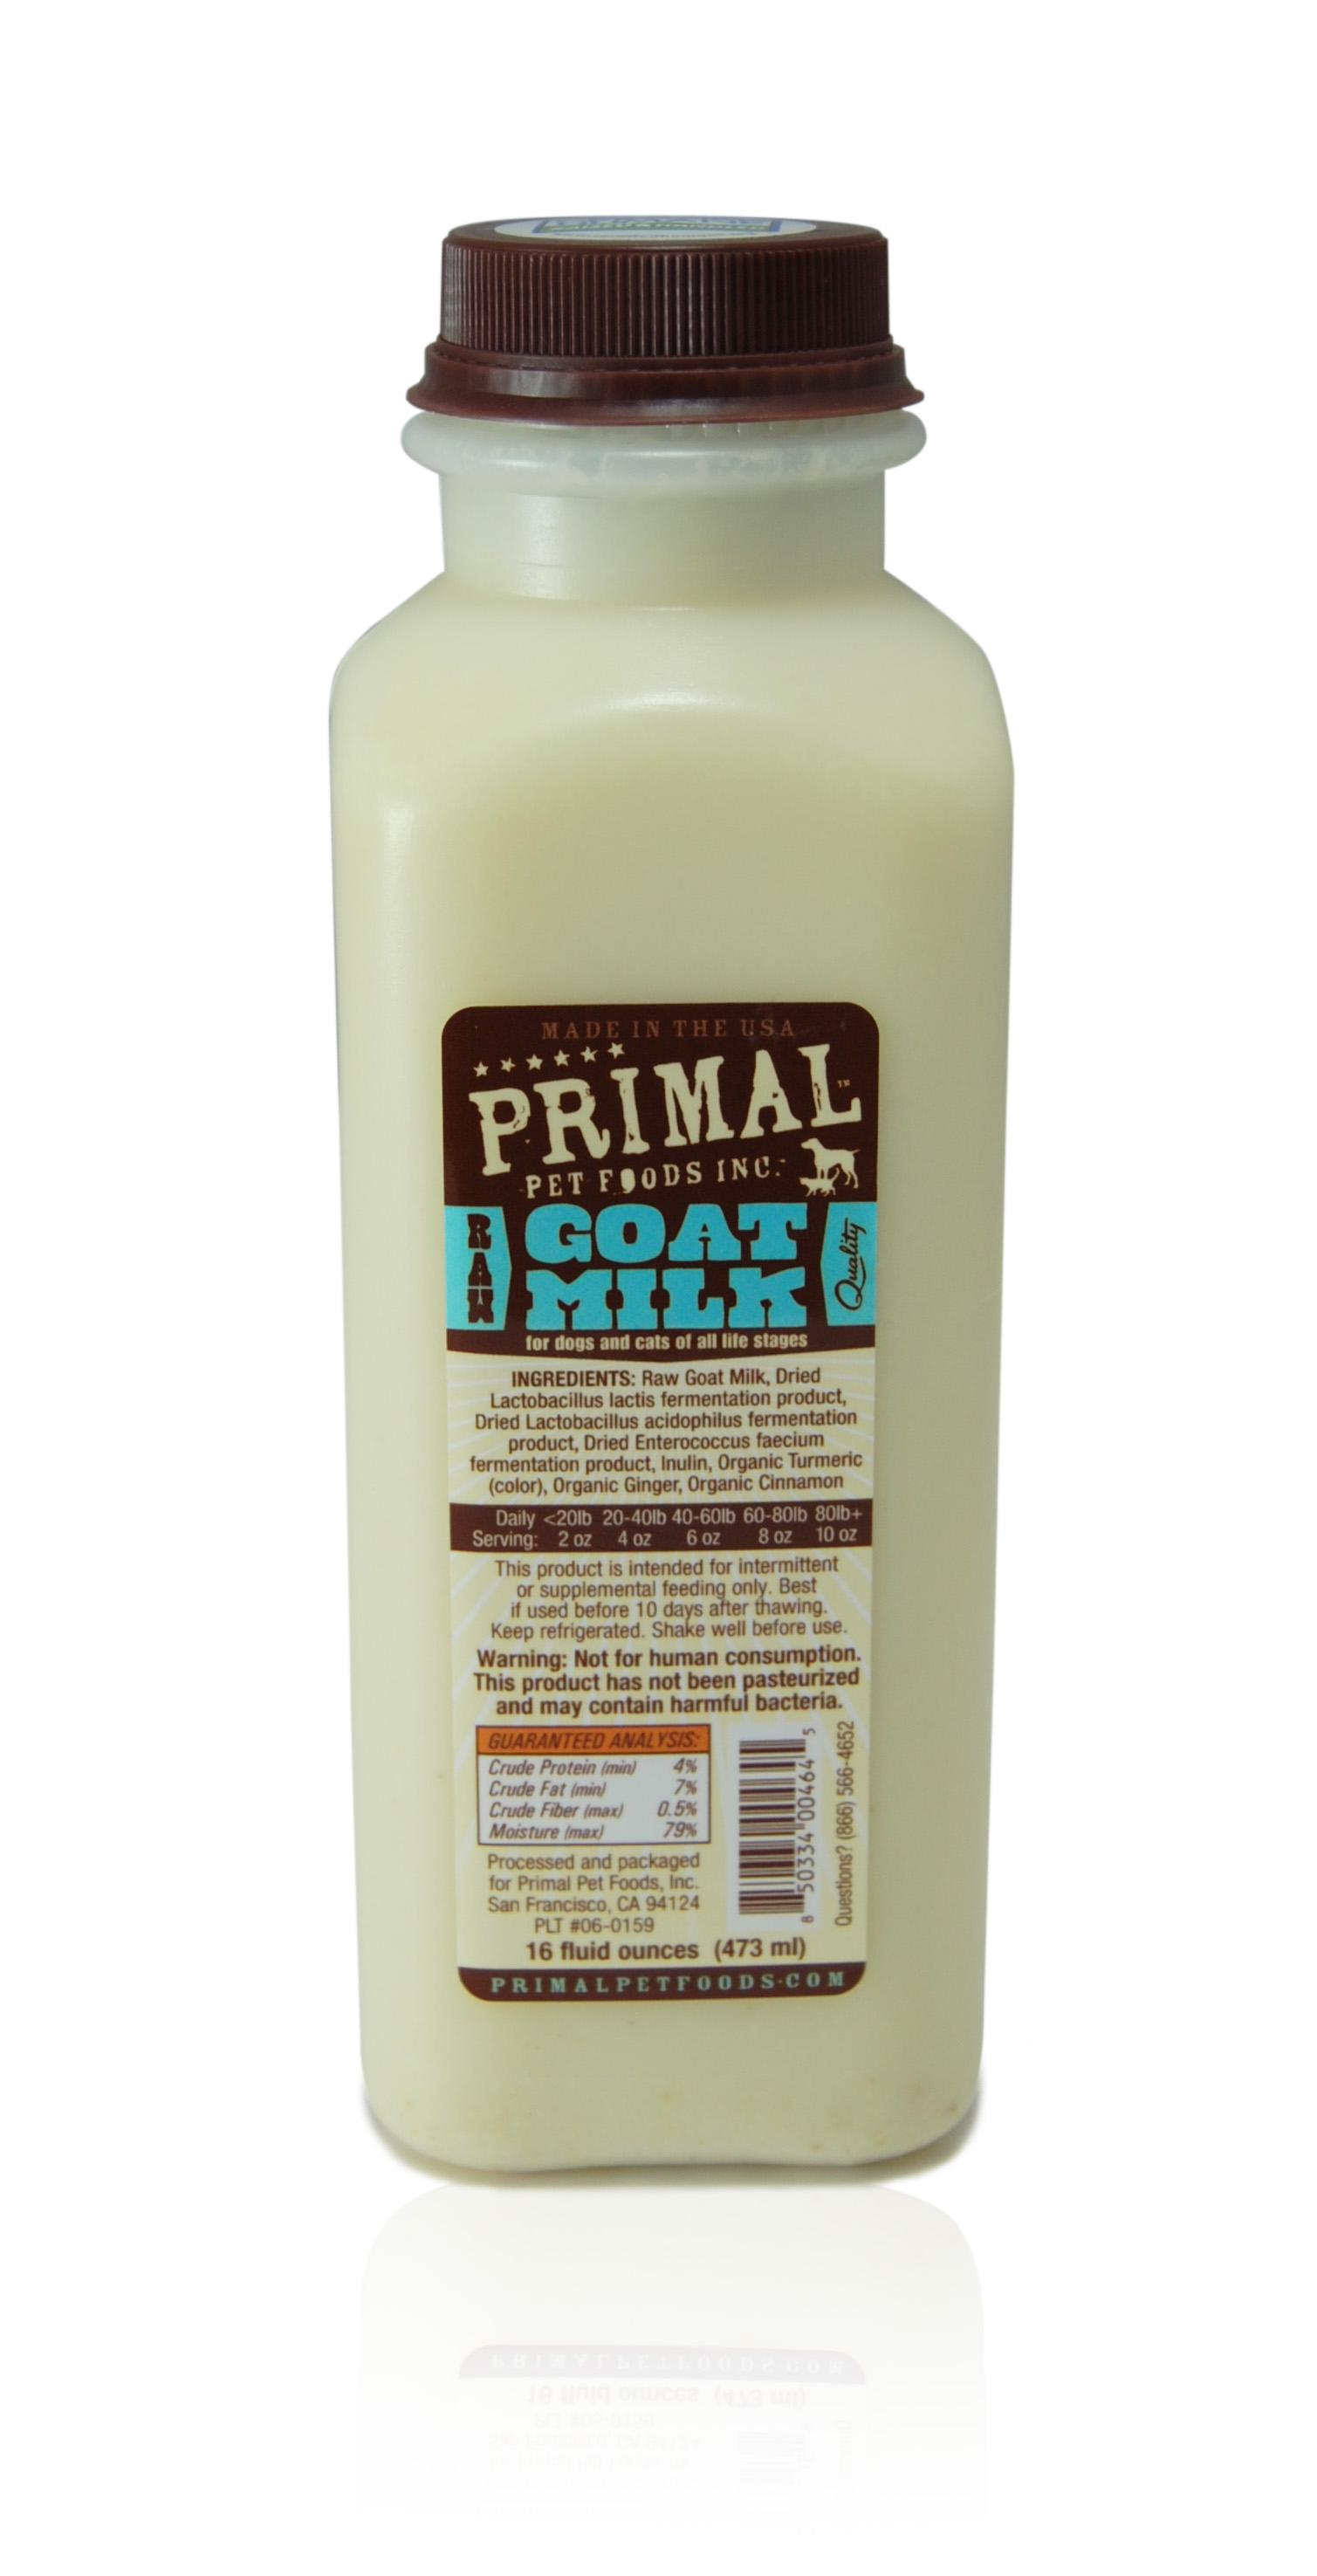 Primal Raw Frozen Goat Milk for Dogs & Cats, 16-oz